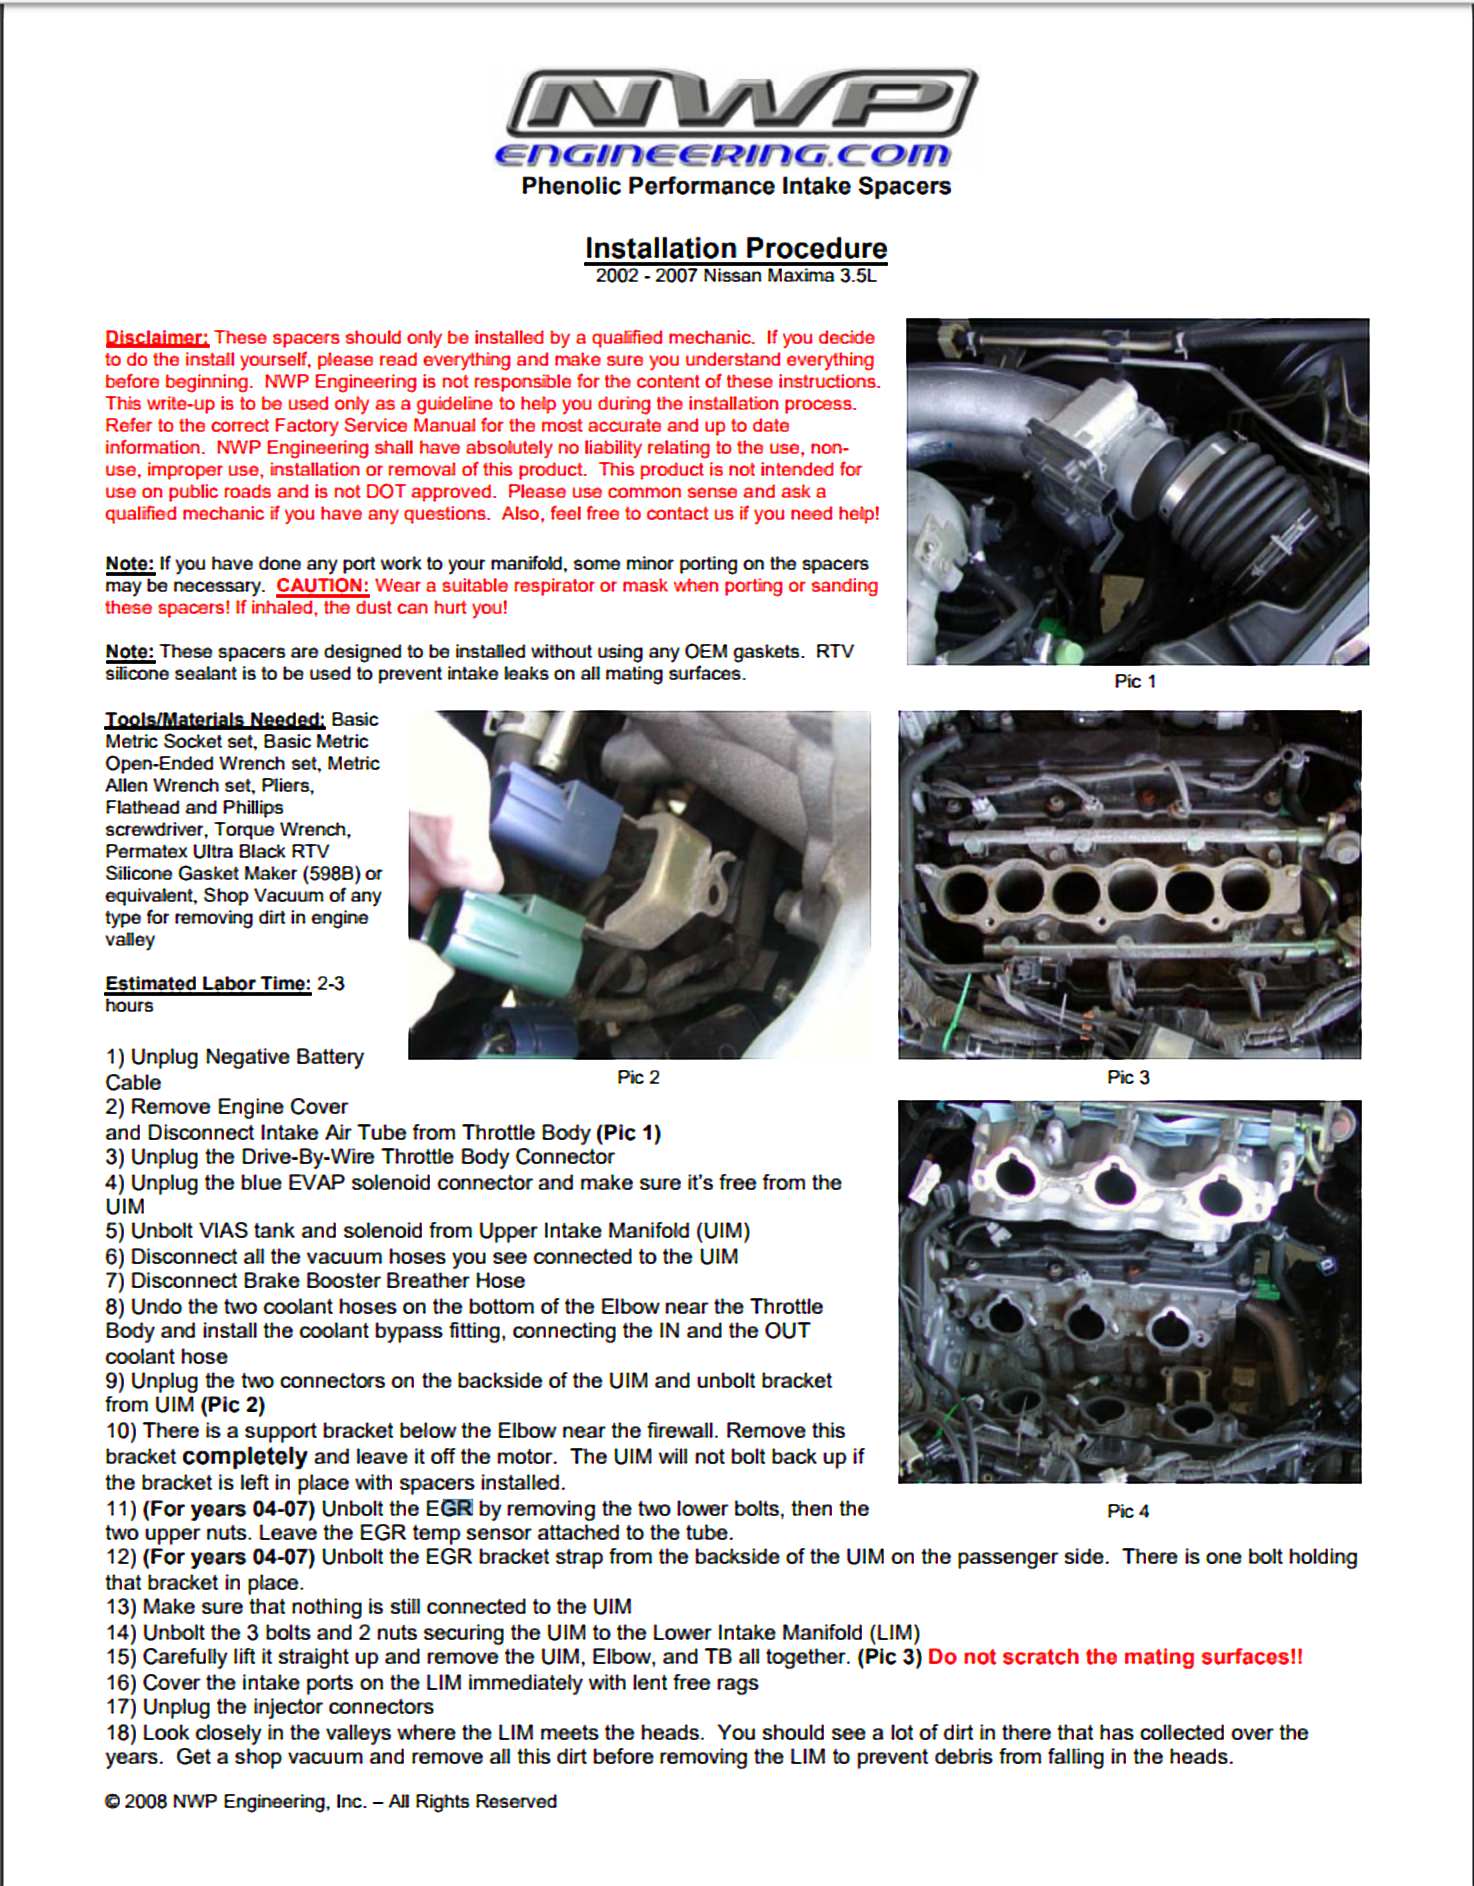 How To Install Nwp Phenolic Performance Intake Spacers